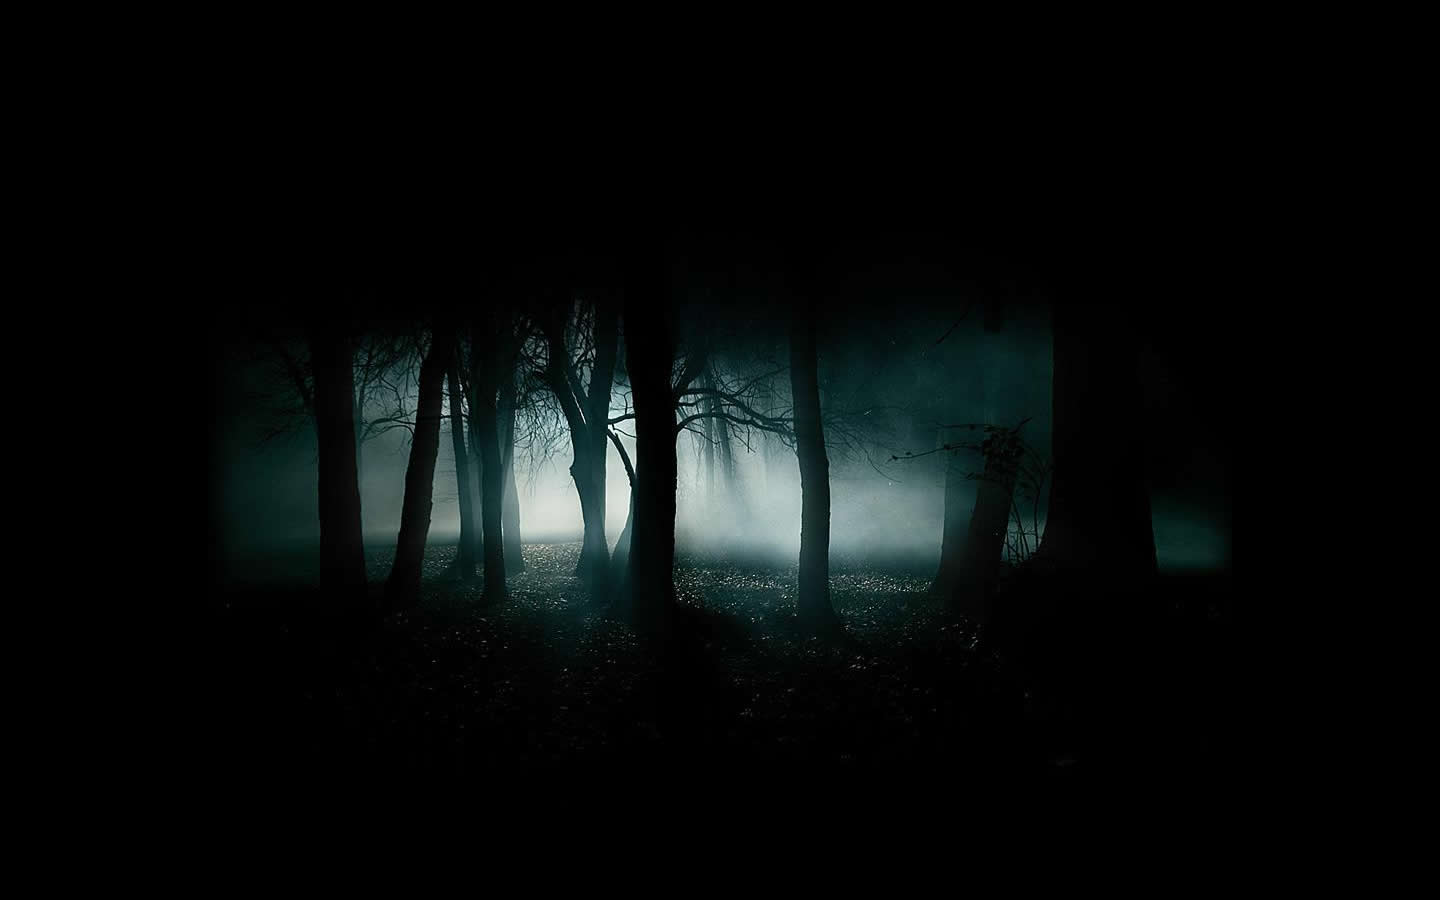 Abstract Hd Forest 41564 Wallpaper wallpaper for Cool Dark Backgrounds Hd  45ifm